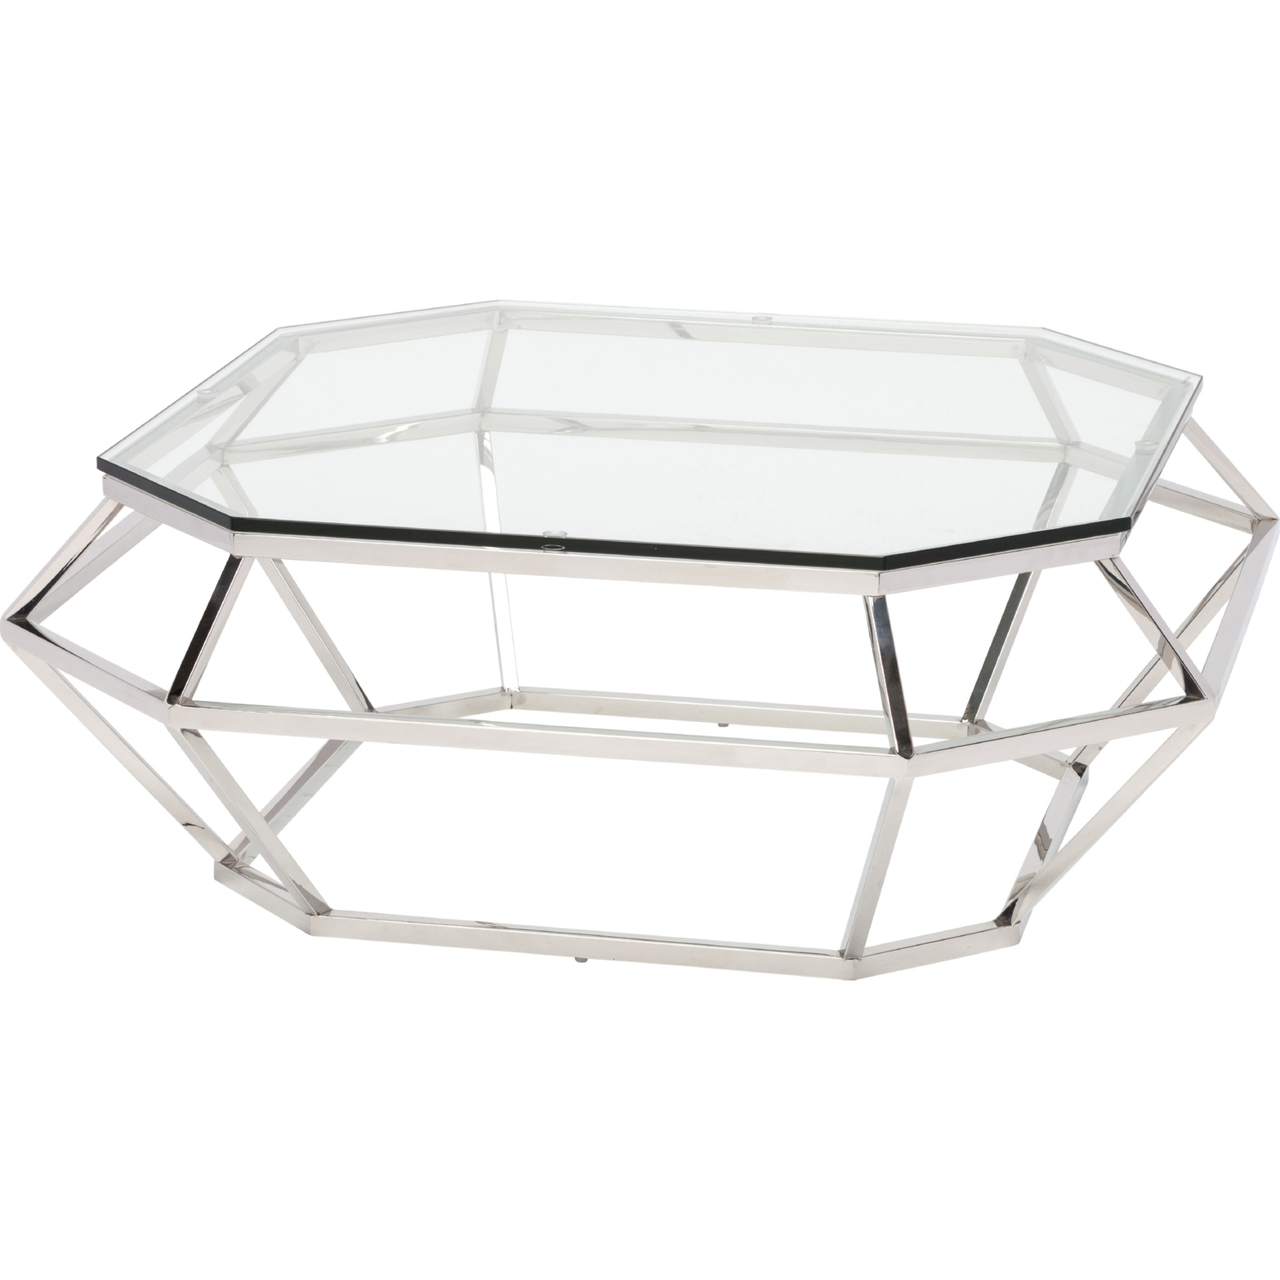 Nuevo Aurora Gold Coffee Table: Nuevo Diamond Square Coffee Table Stainless Steel Or Rose